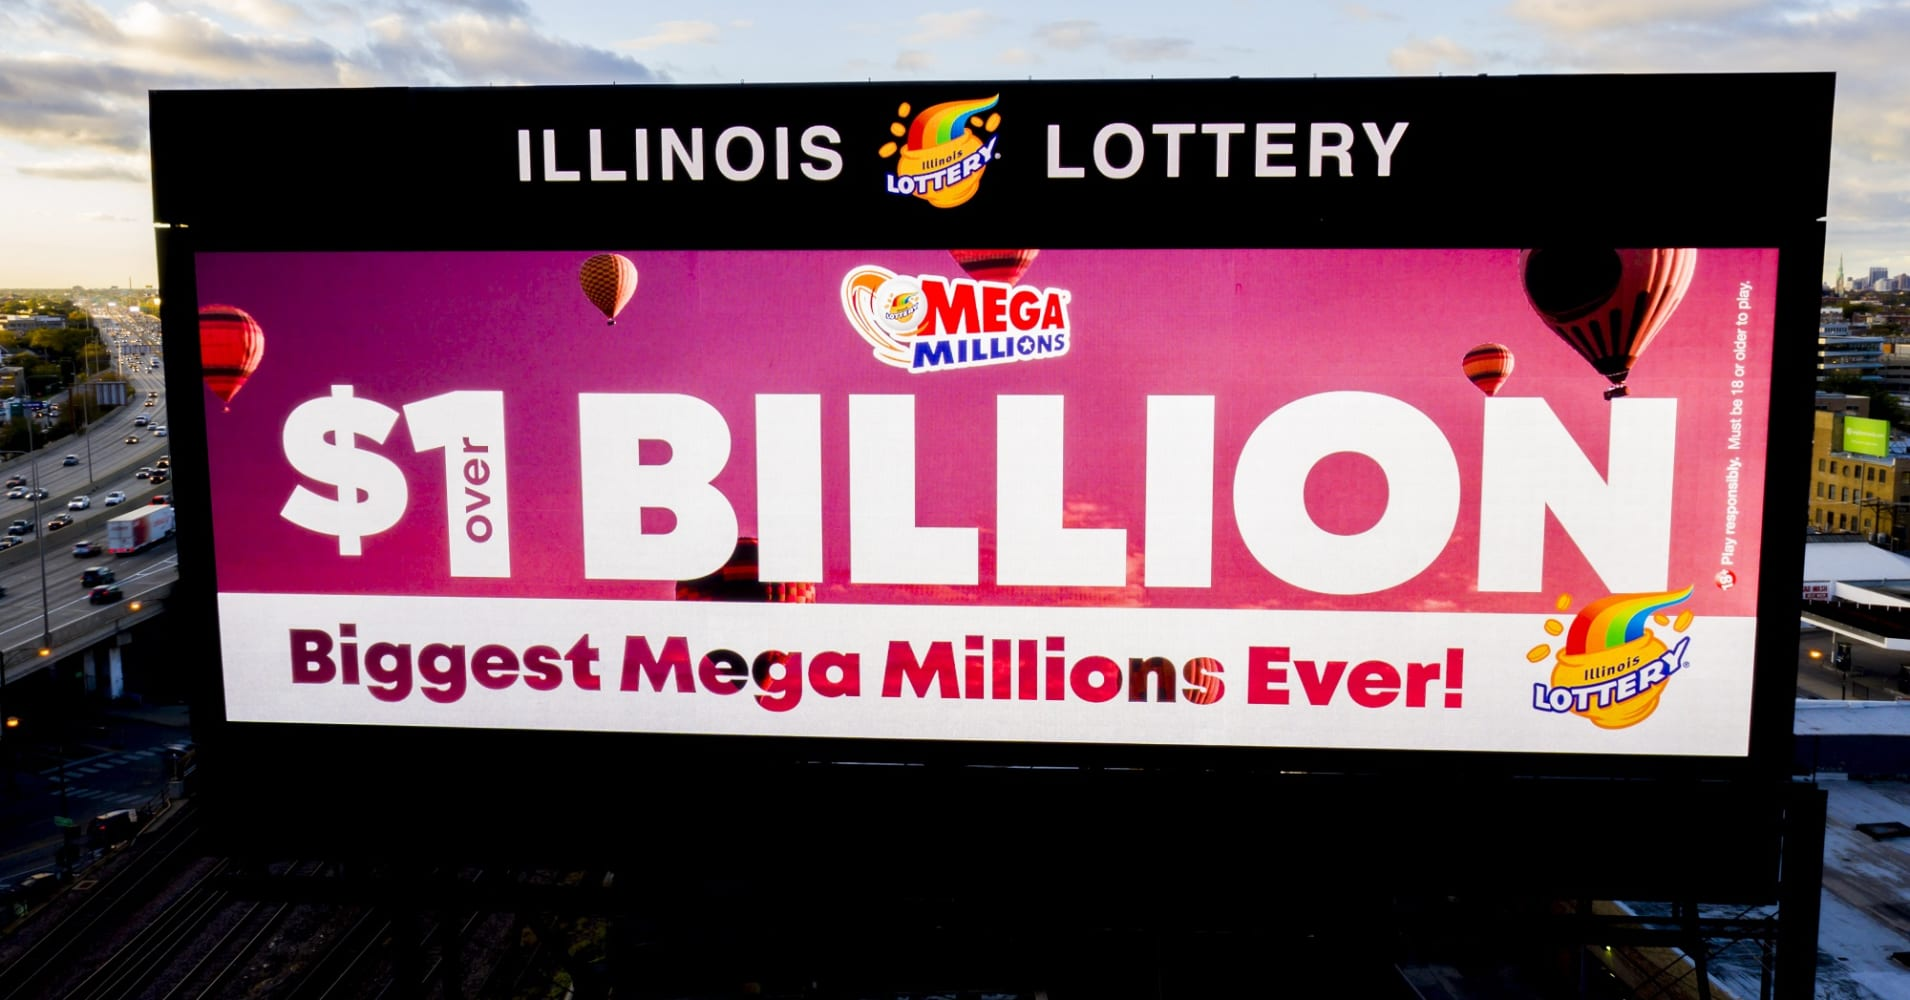 A billboard advertising the largest Mega Millions jackpot ever for Oct. 23, 2018.